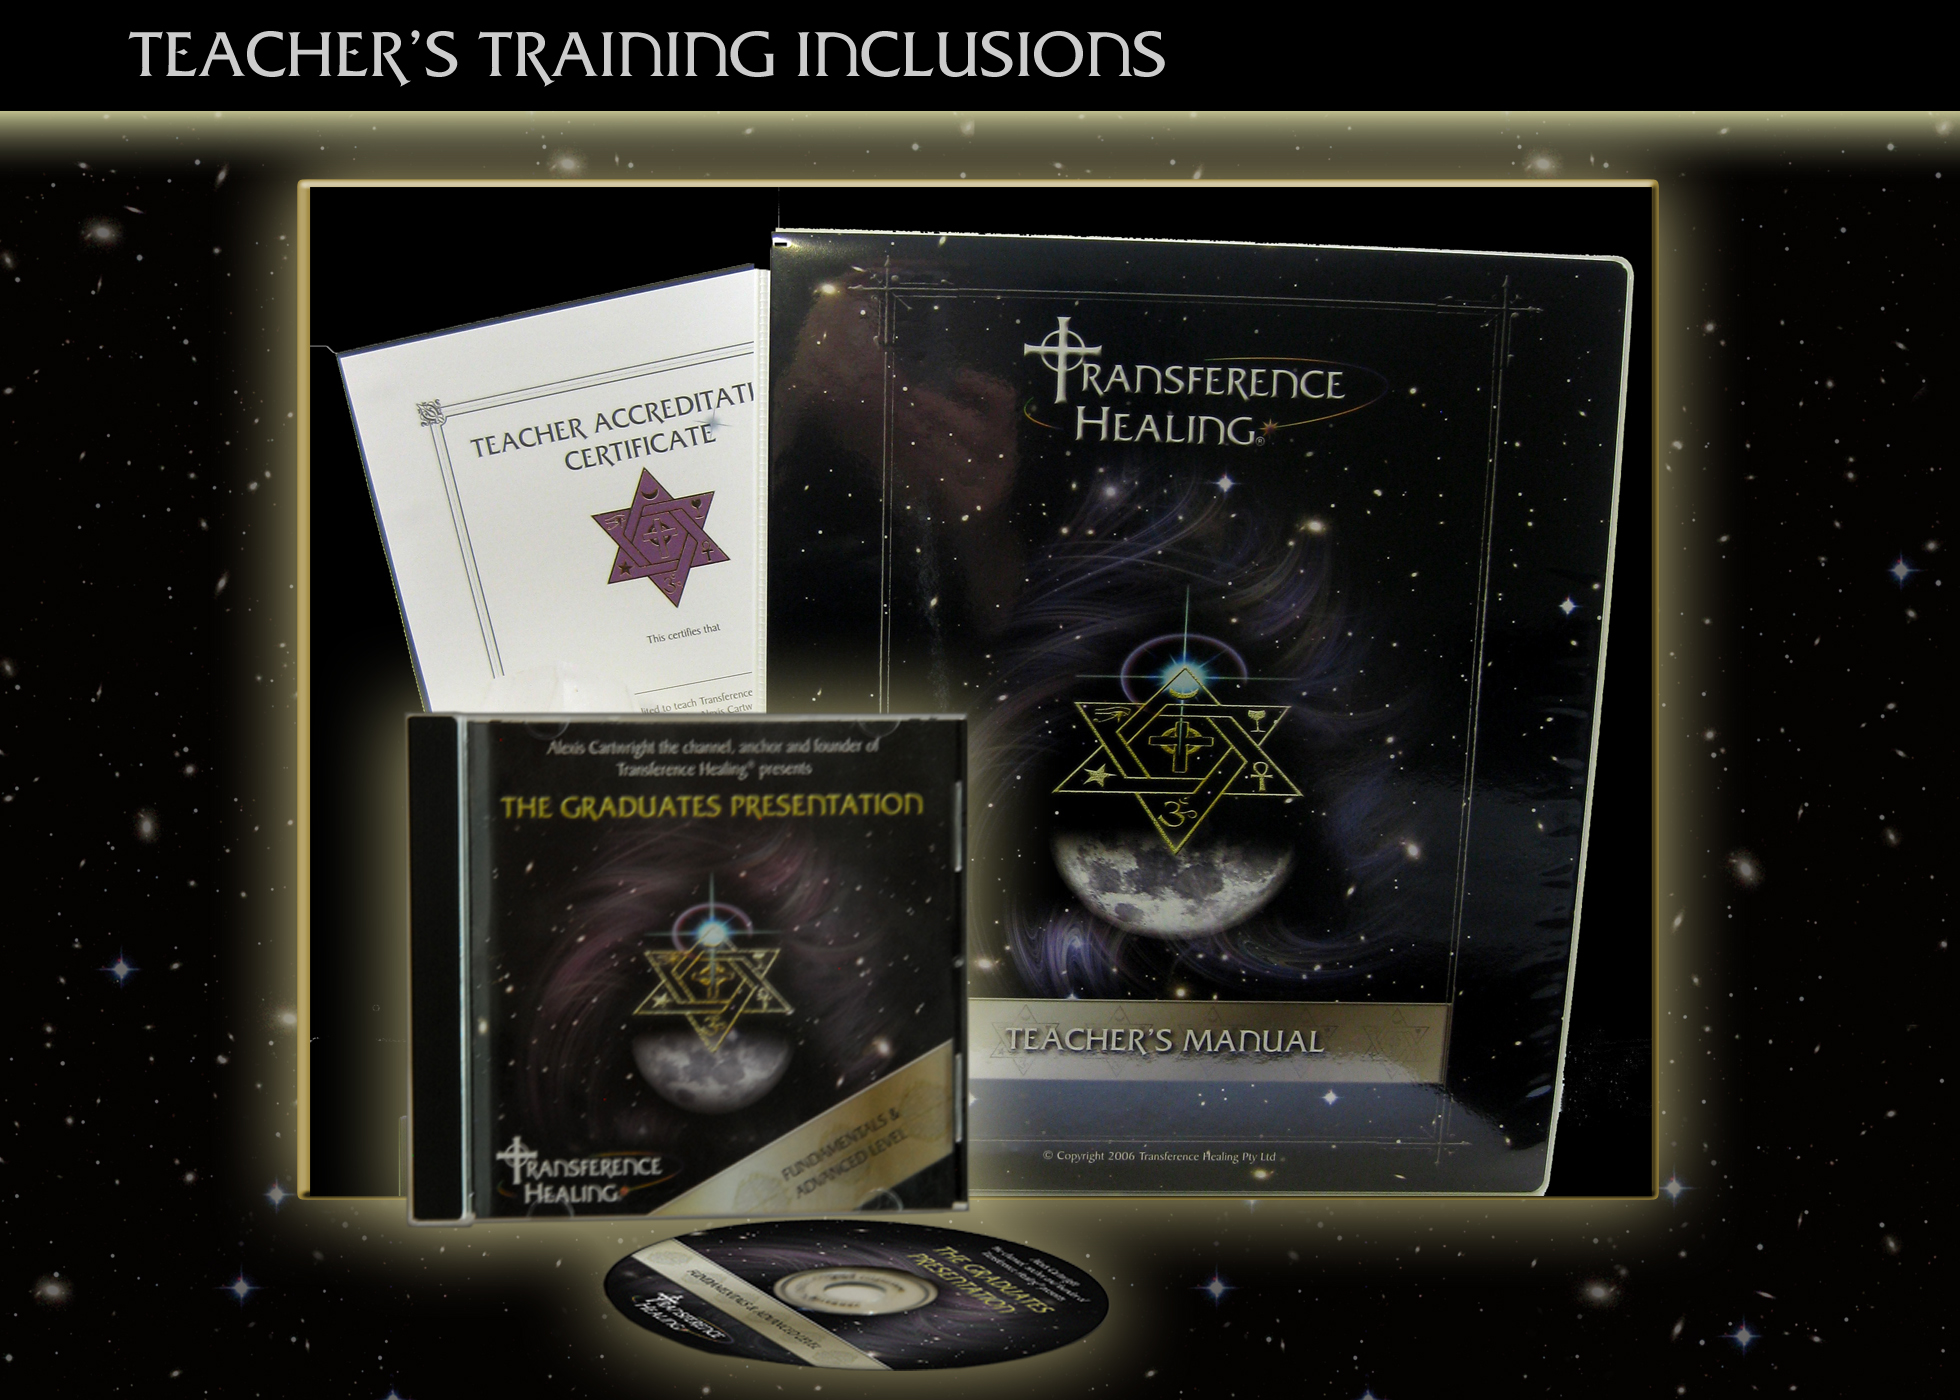 TEACHER'S TRAINING INCLUSIONS